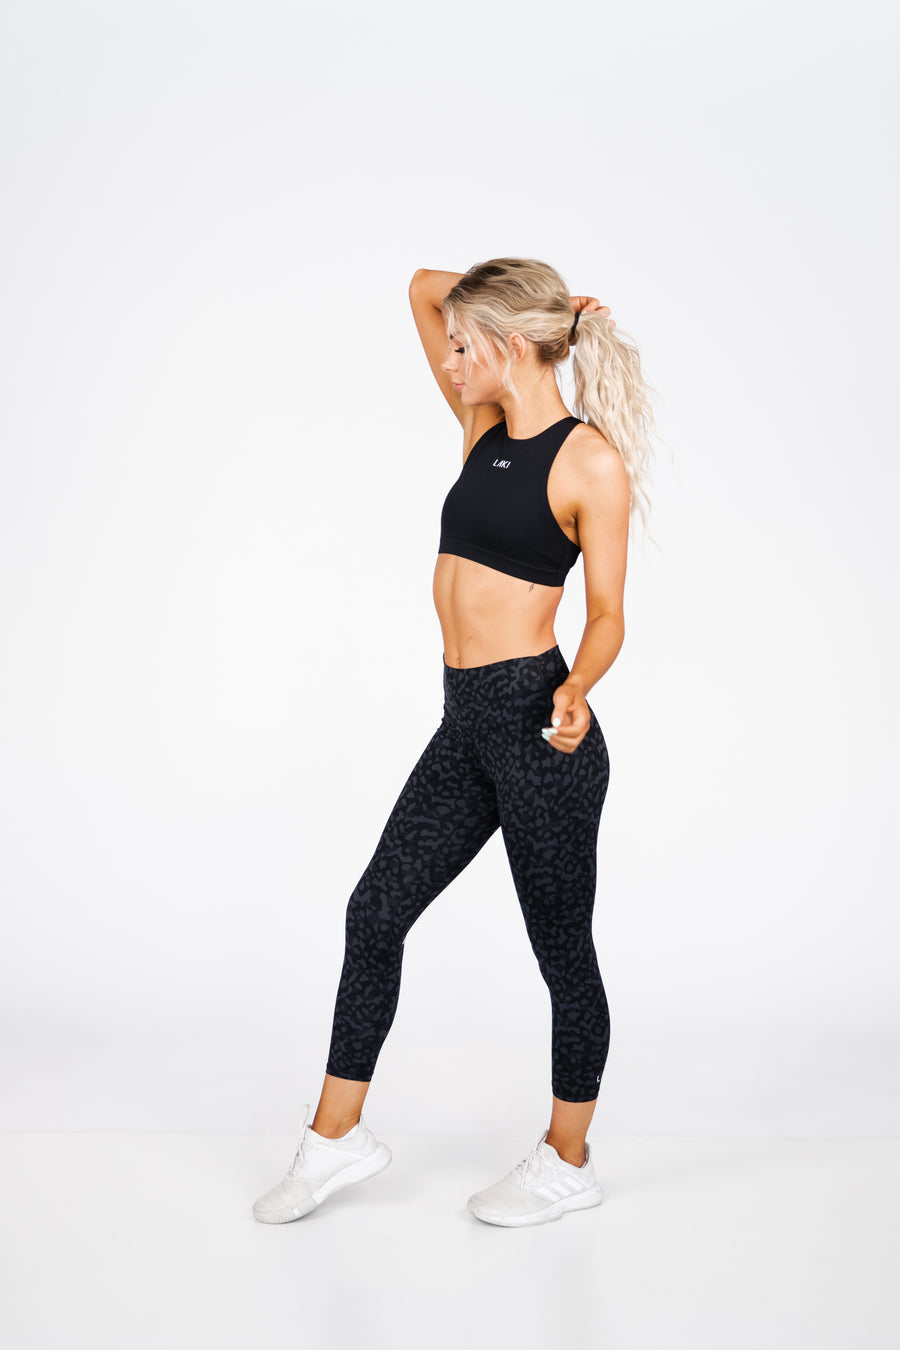 CHEETAH LEGACY LEGGINGS